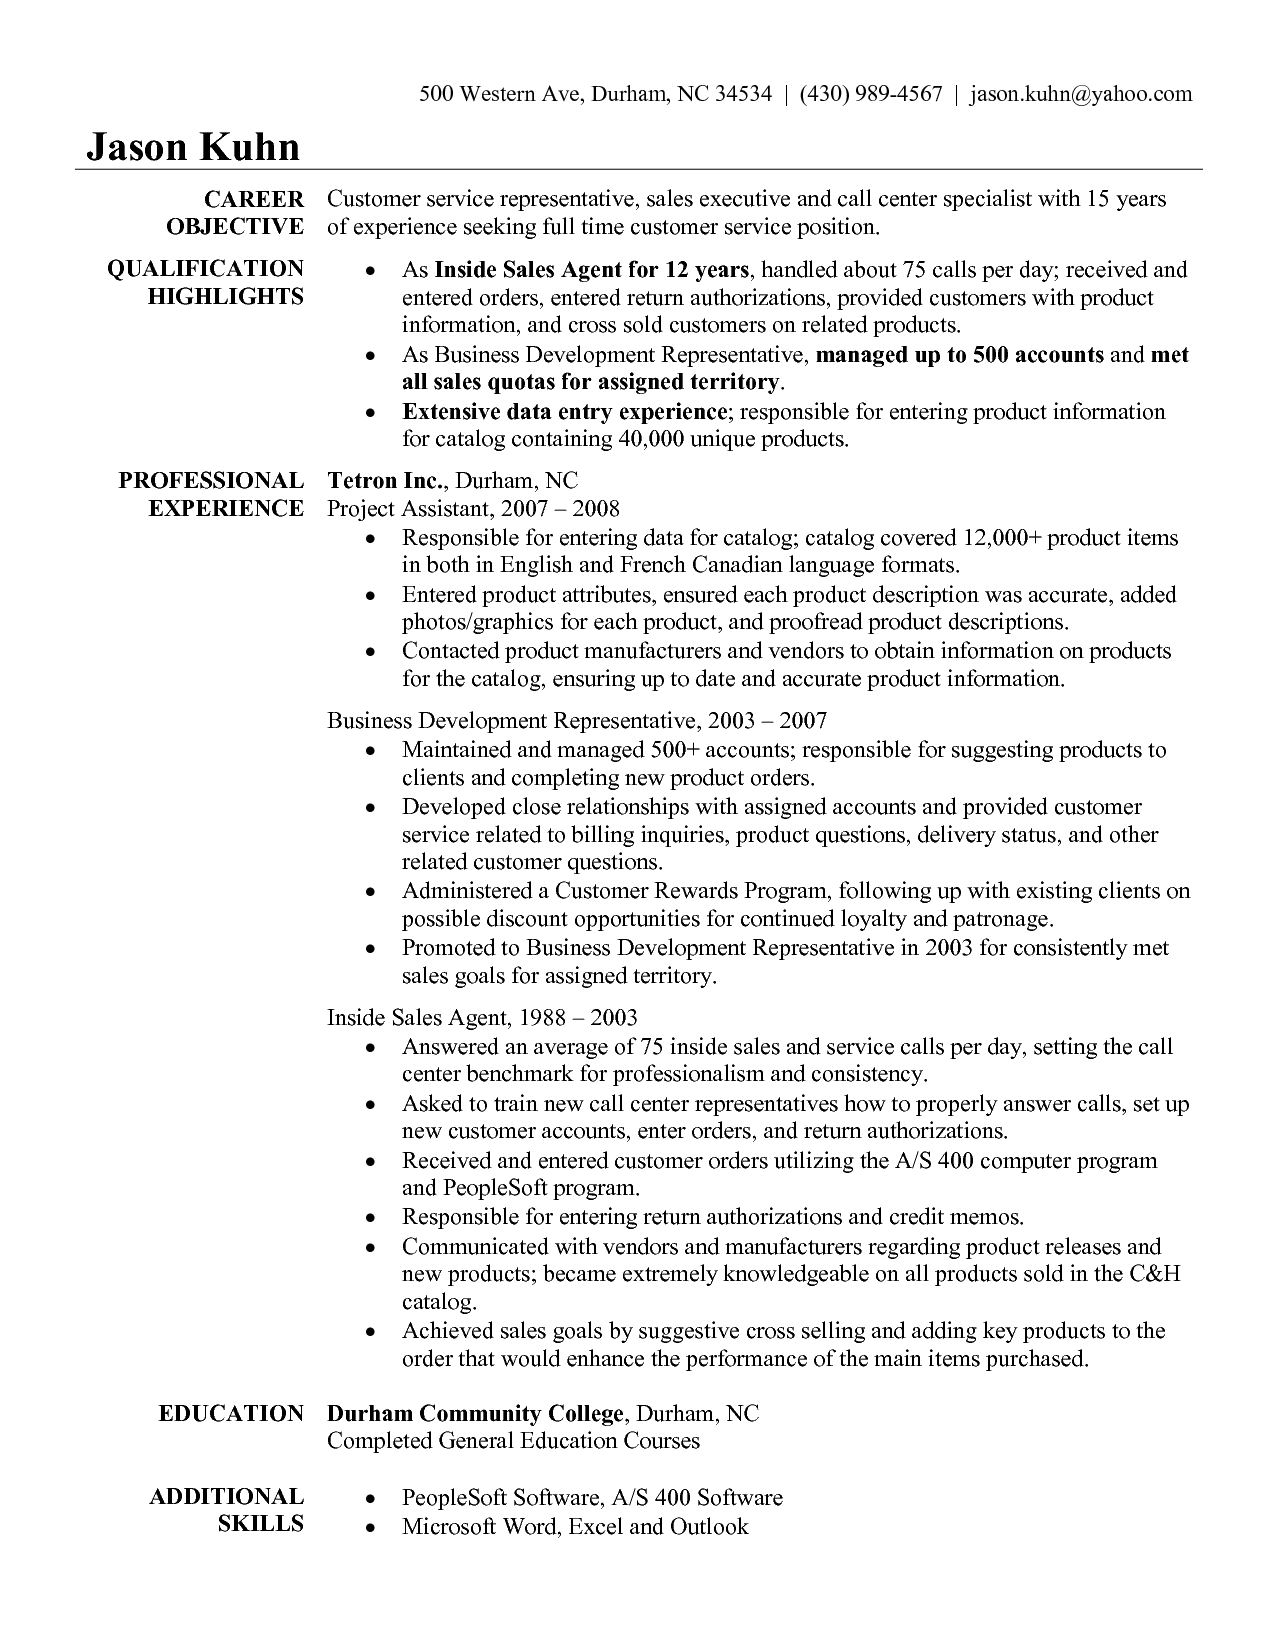 Resume Objective Customer Service Insurance Claims Representative Resume Sample  Httpwww